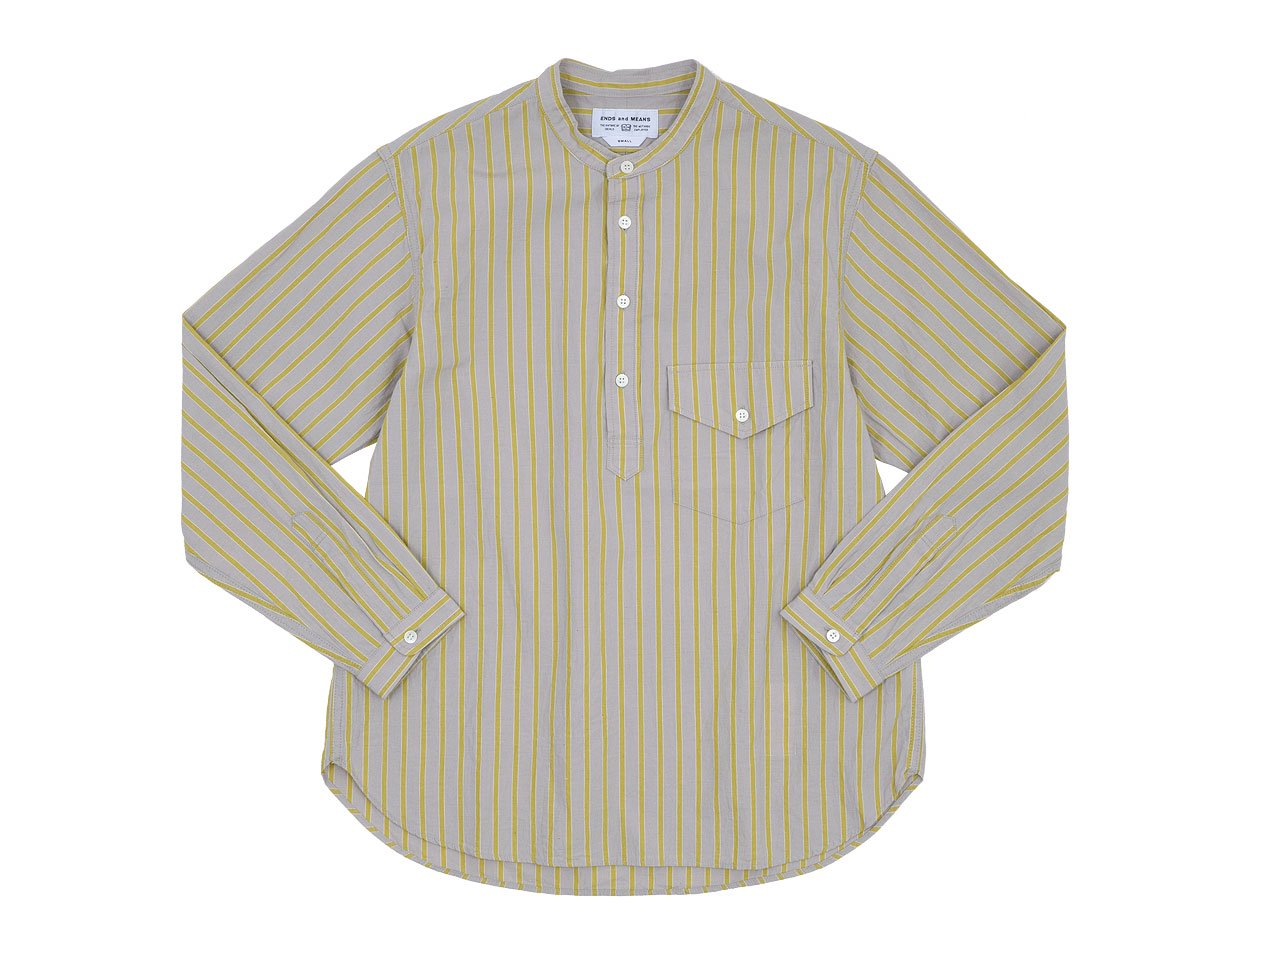 ENDS and MEANS Band Collar Shirts YELLOW STRIPE